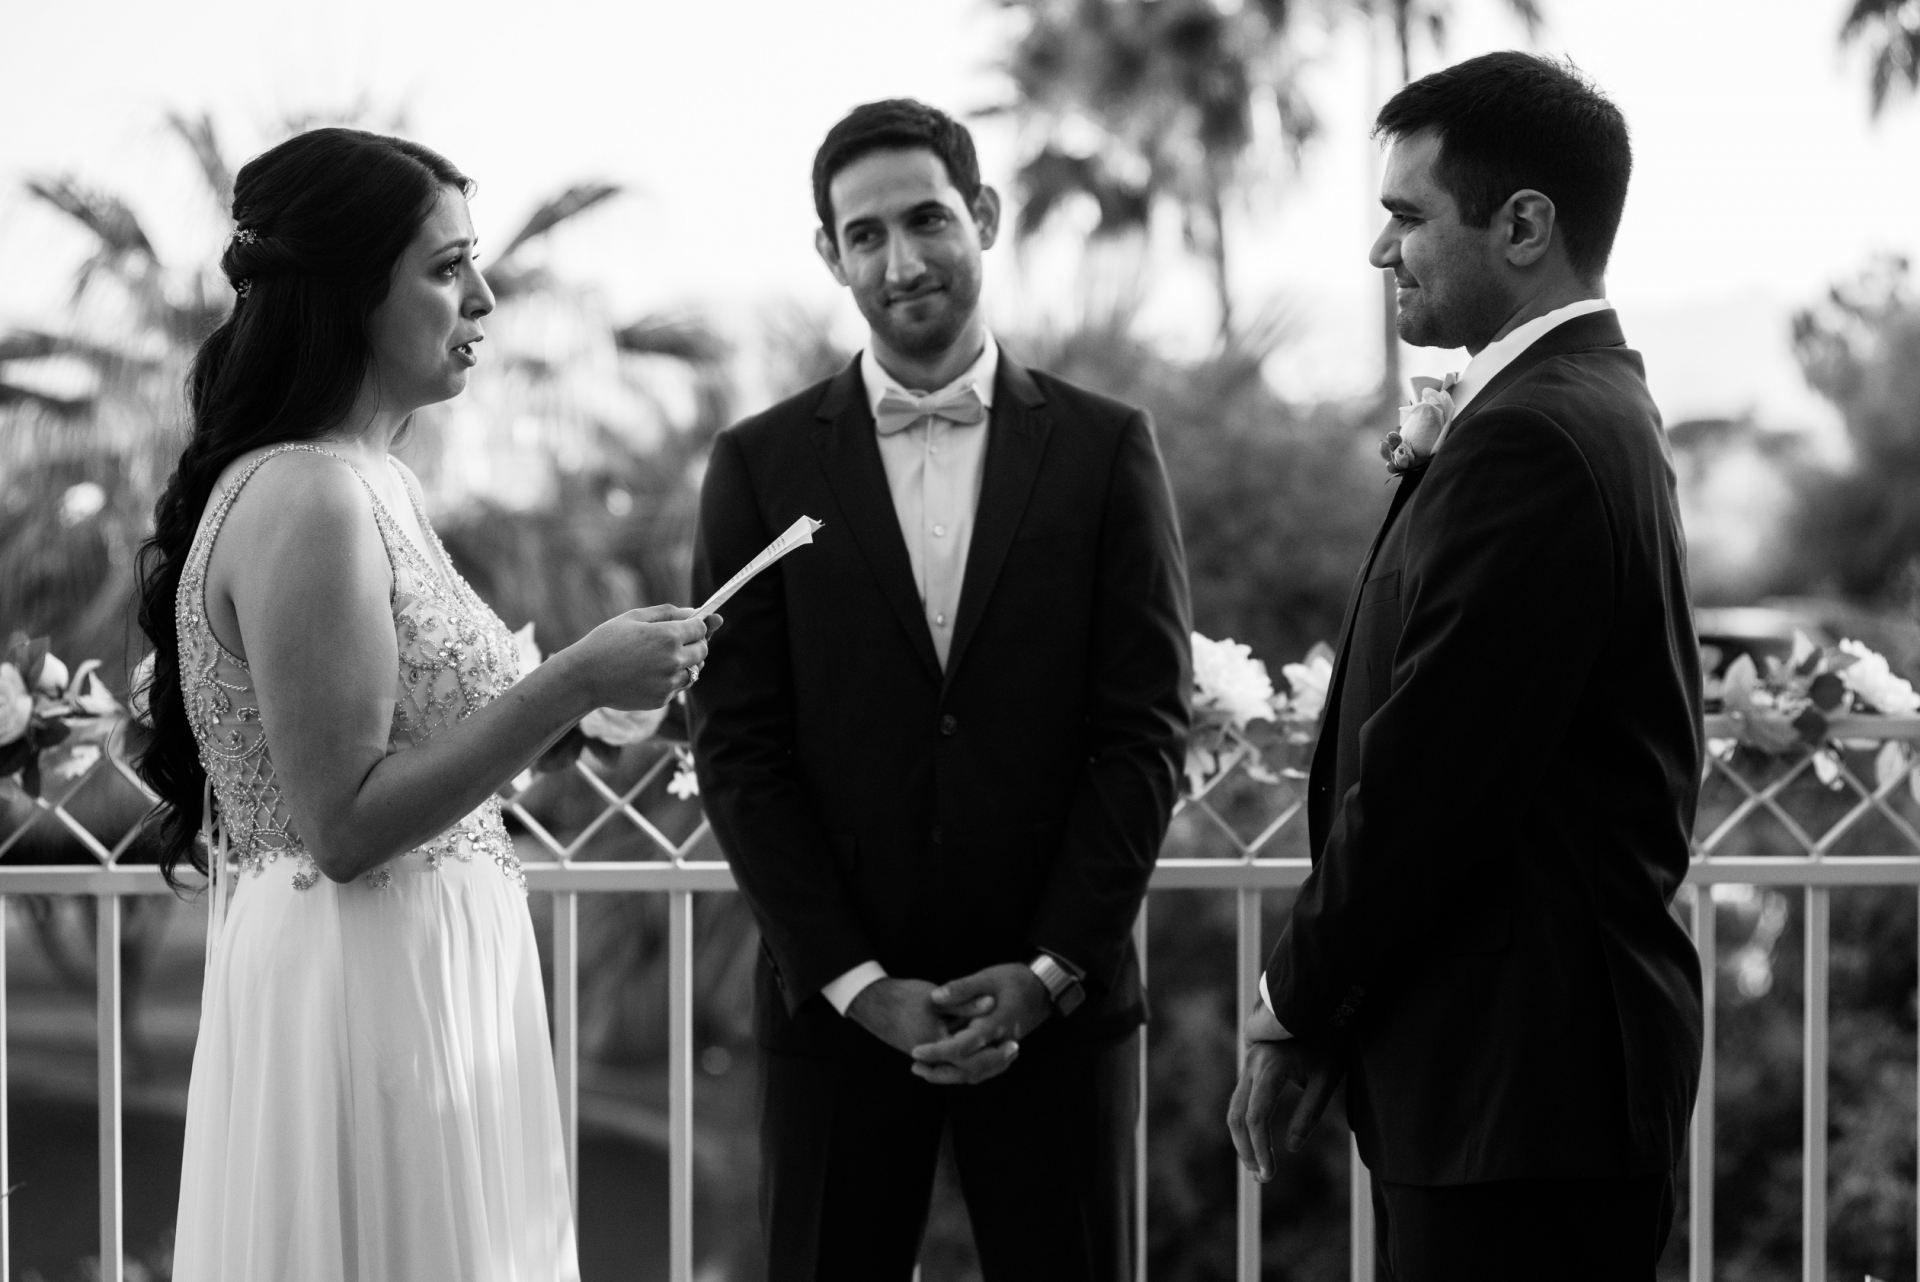 The Phoenician Resort Wedding Ceremony Picture | The couple look deep into one another's eyes